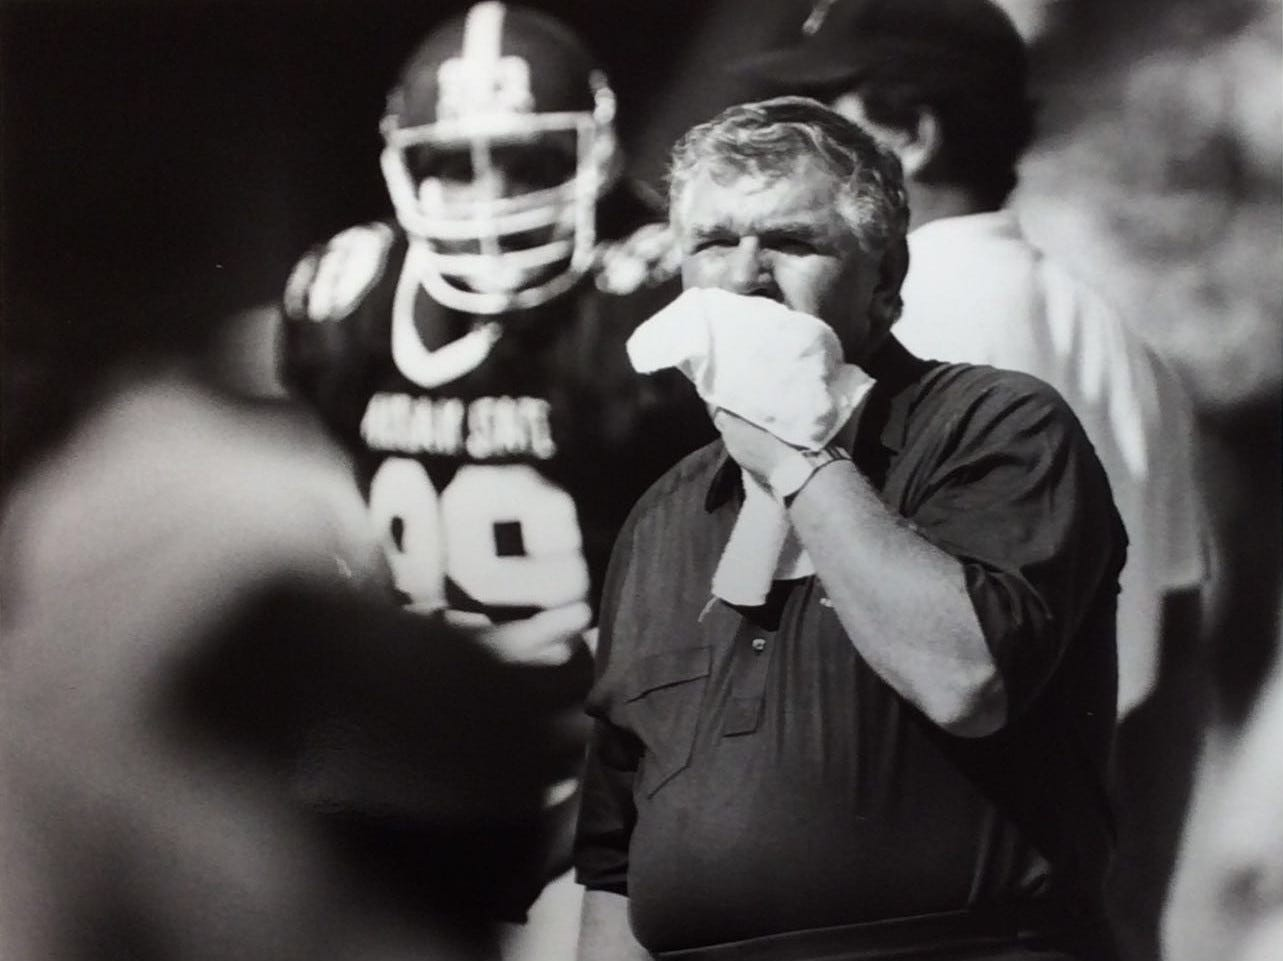 George Perles wipes his face during the fourth quarter of the Aloha Bowl, 1989.